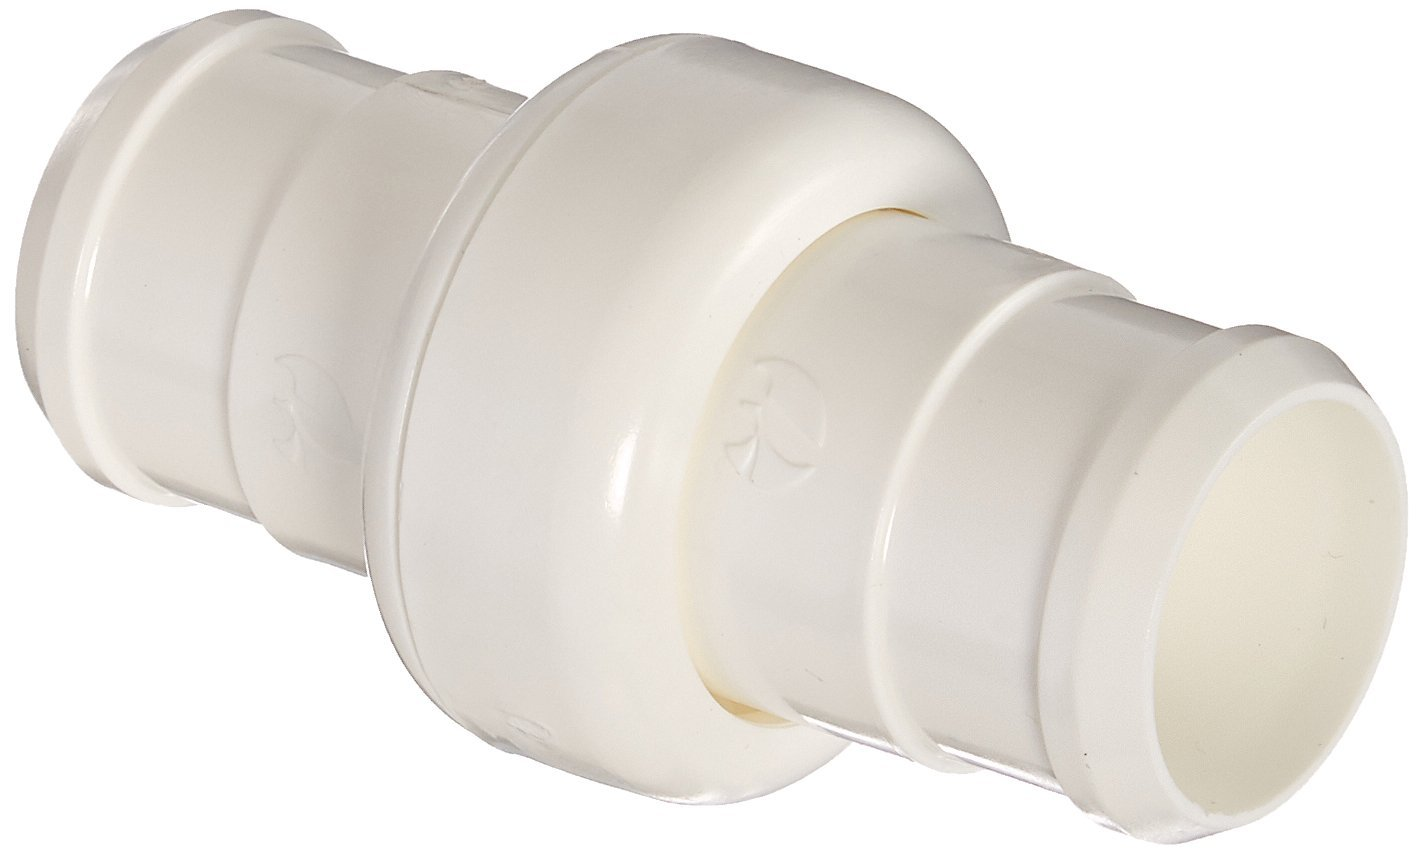 Zodiac 9-100-3002 Hose Swivel Replacement for Polaris 360 Vac-Sweep Pool Cleaner